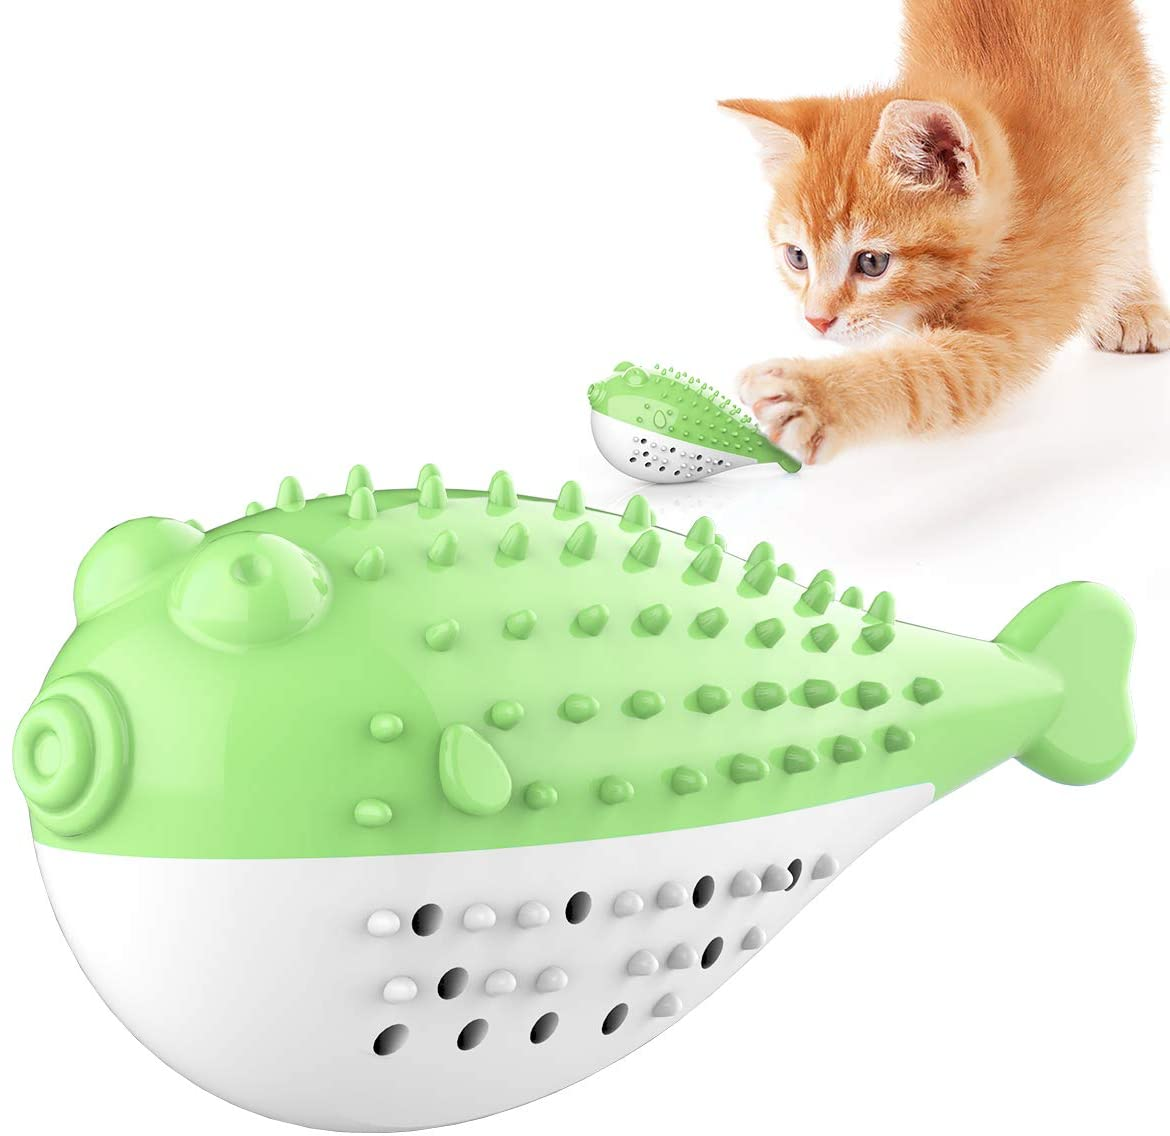 USWT Cat Toothbrush Chew Treat Toy for Kitten Teeth Cleaning Dental Care,Interactive Catnip Toys